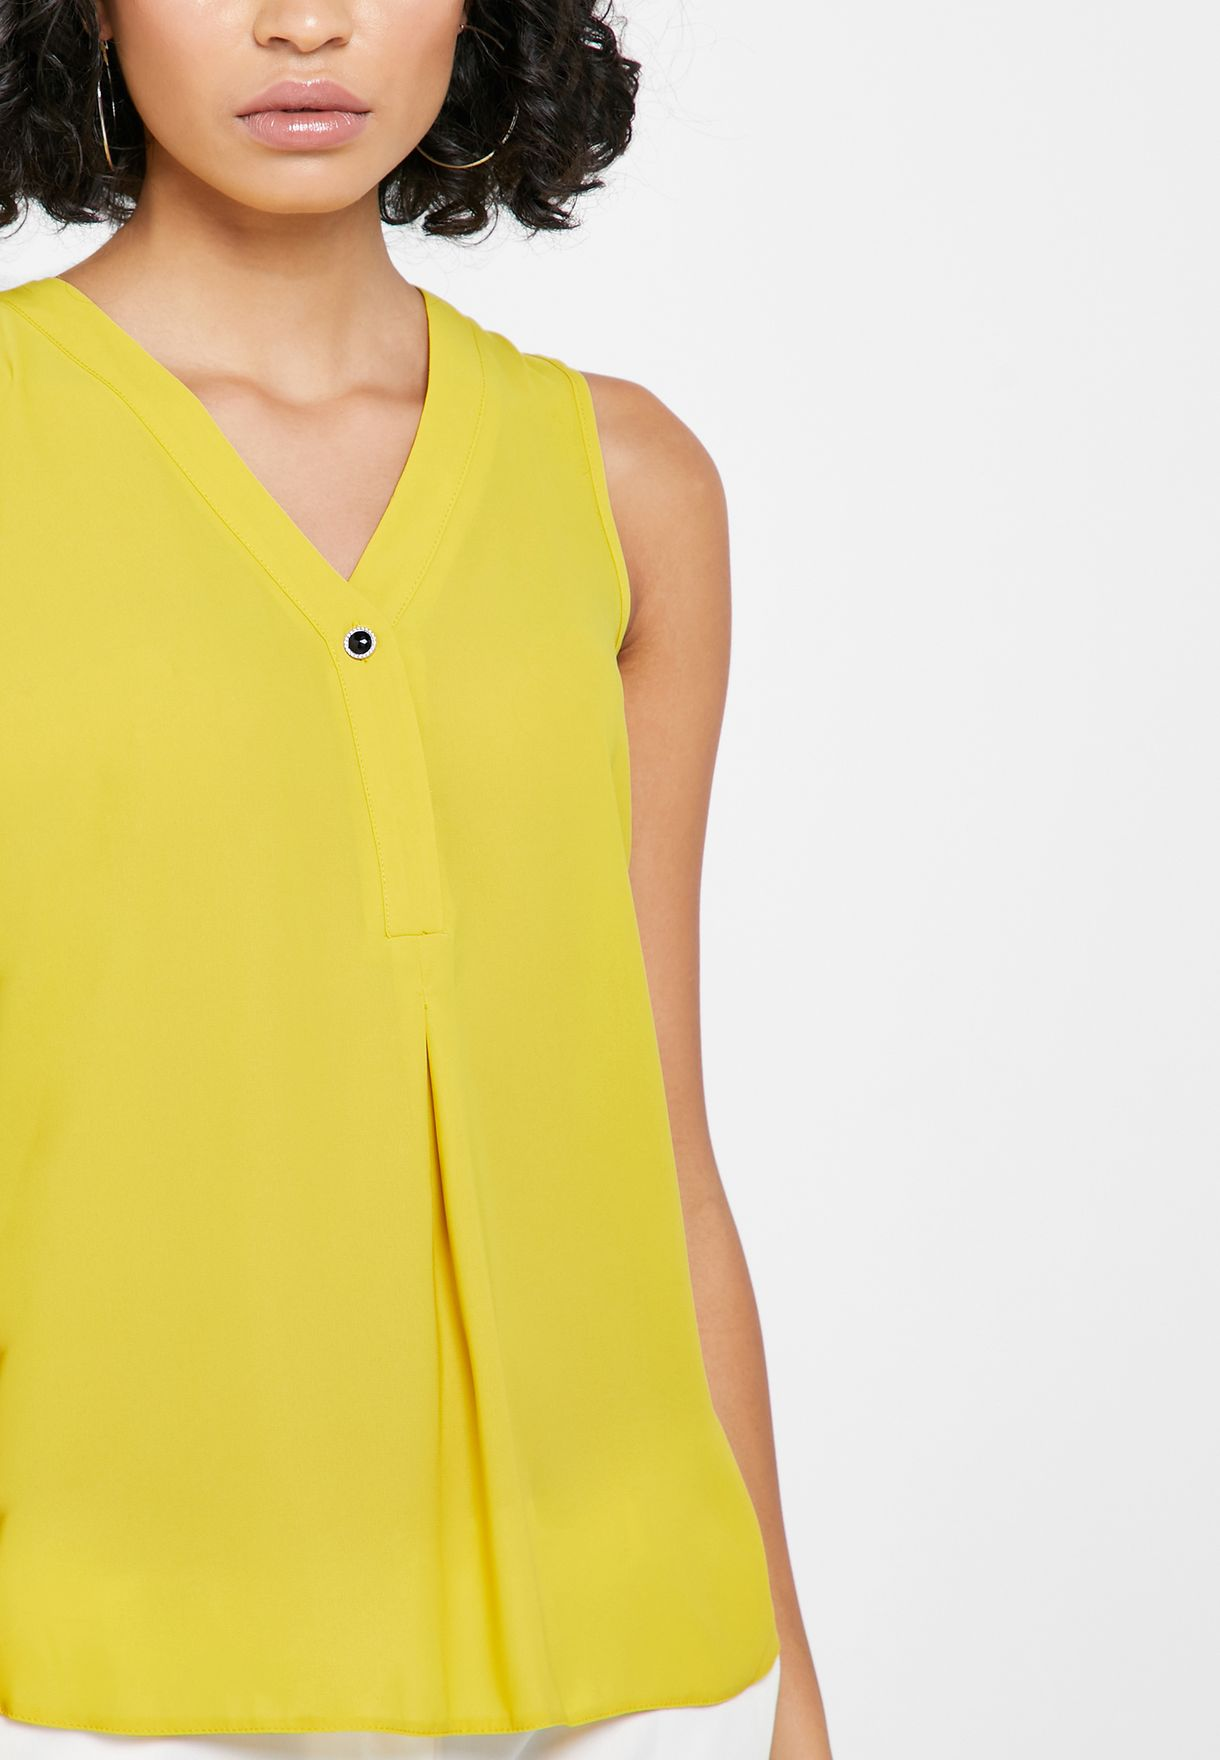 Buy Dorothy Perkins Yellow Button Detail Sleeveless Top For Women, Uae 18832at71zqp